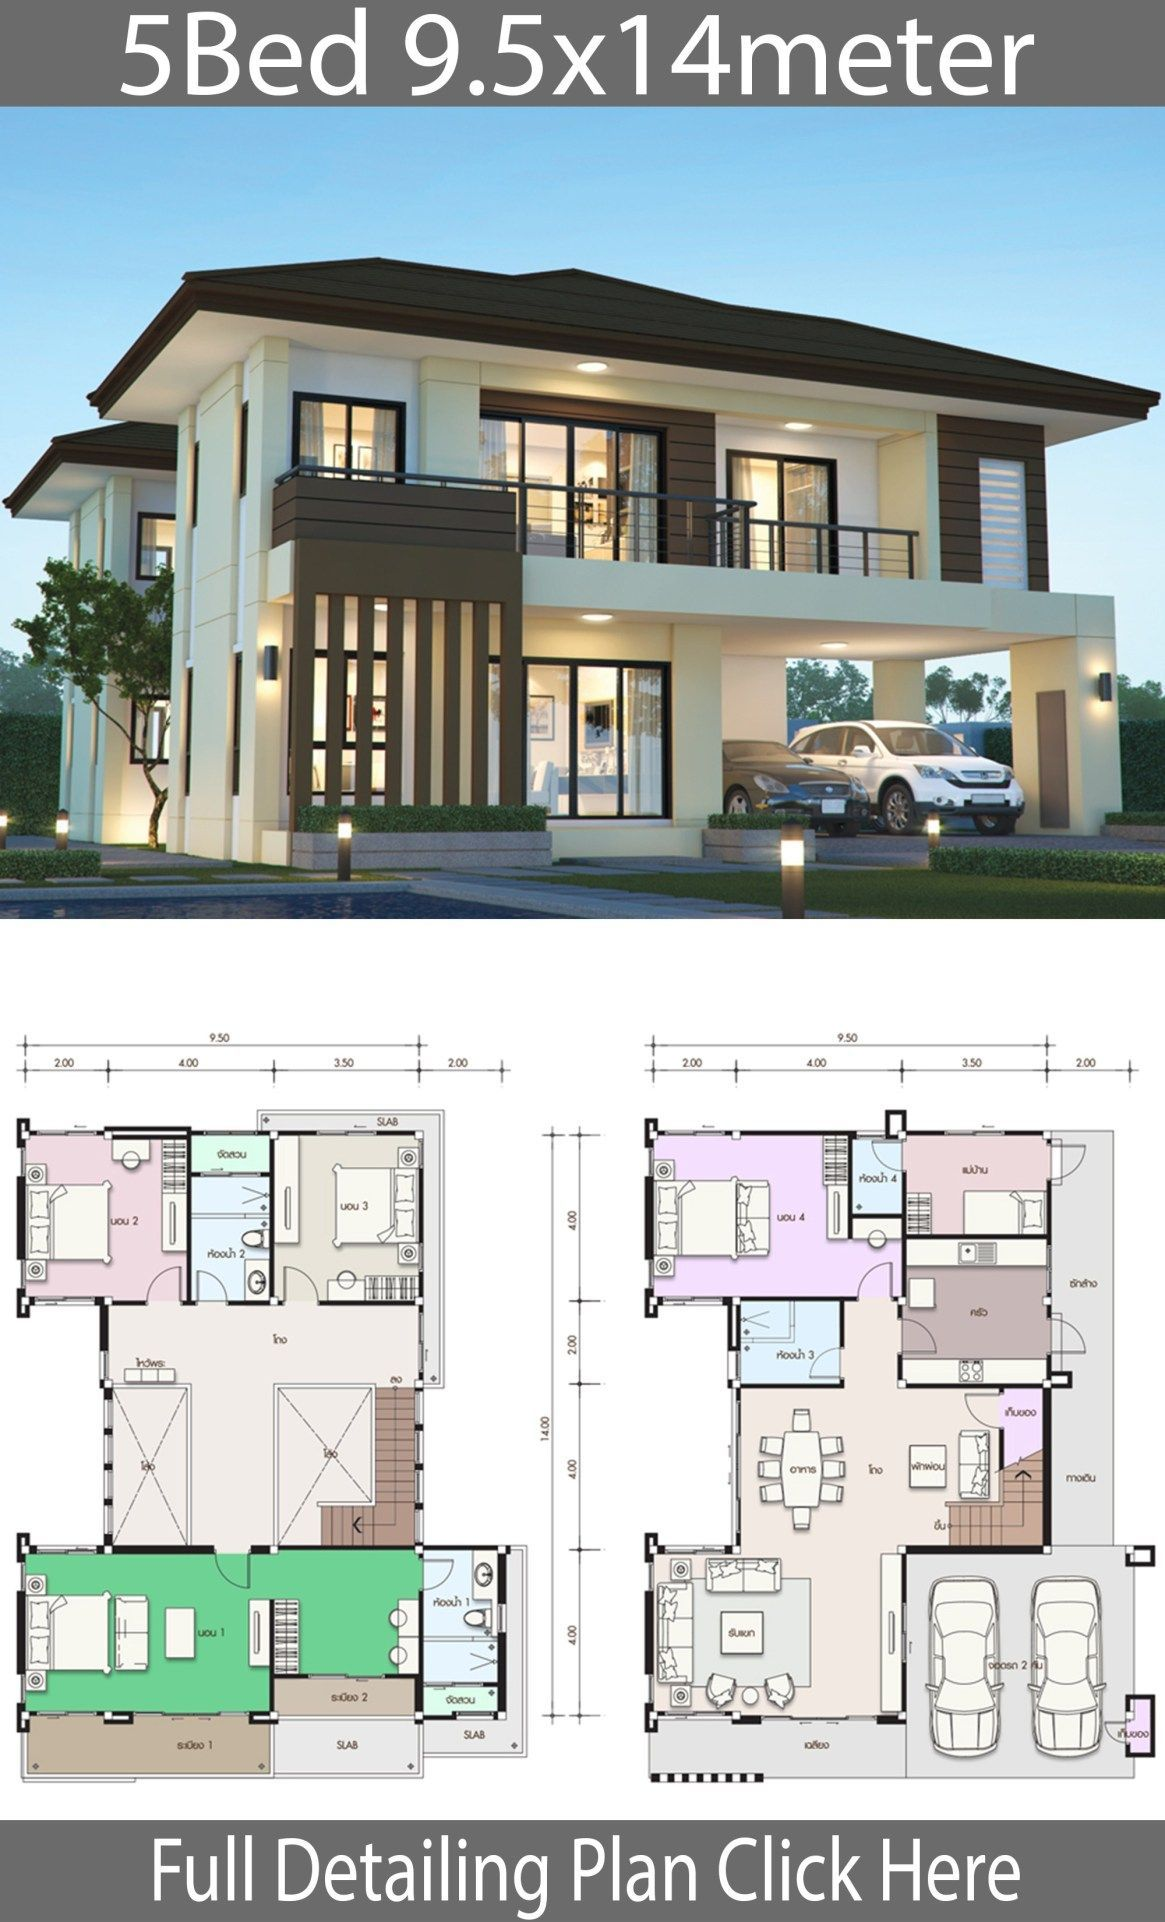 House Design Plan 9 5x14m With 5 Bedrooms Housedesigninterior House Design Plan 9 5x14m Wit Beautiful House Plans 2 Storey House Design Affordable House Plans